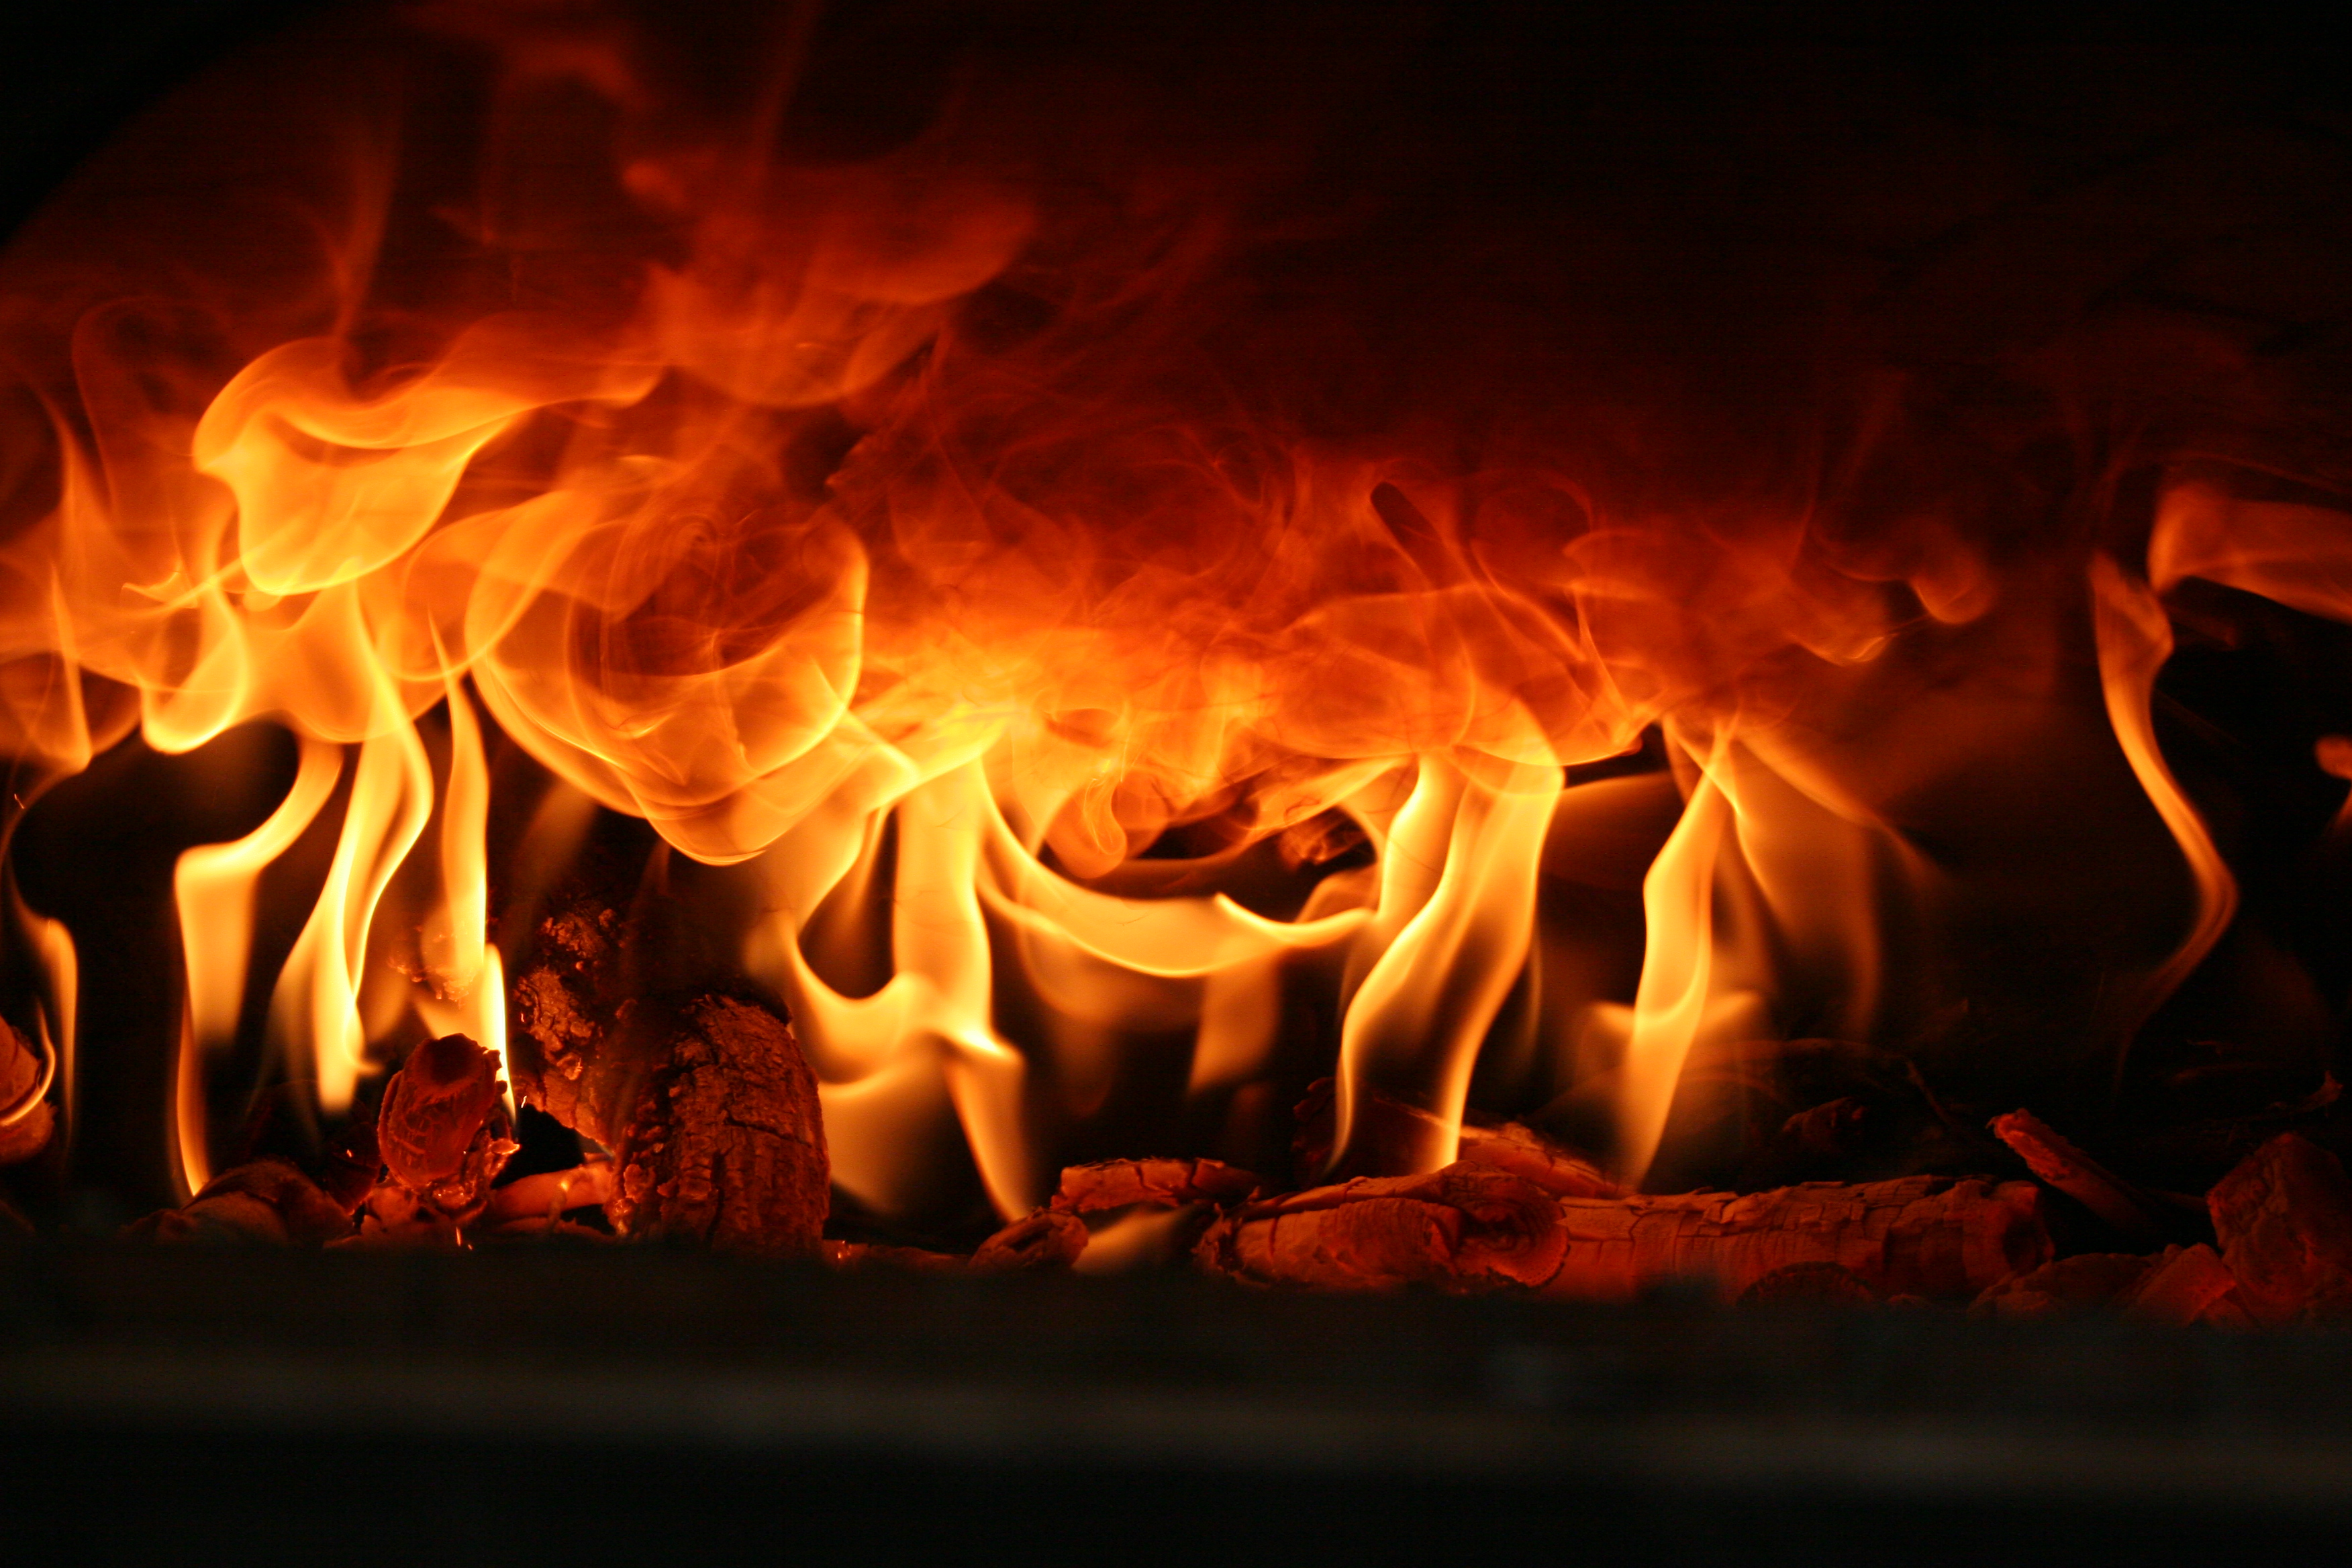 Fire by Flickr user Amy Glaze